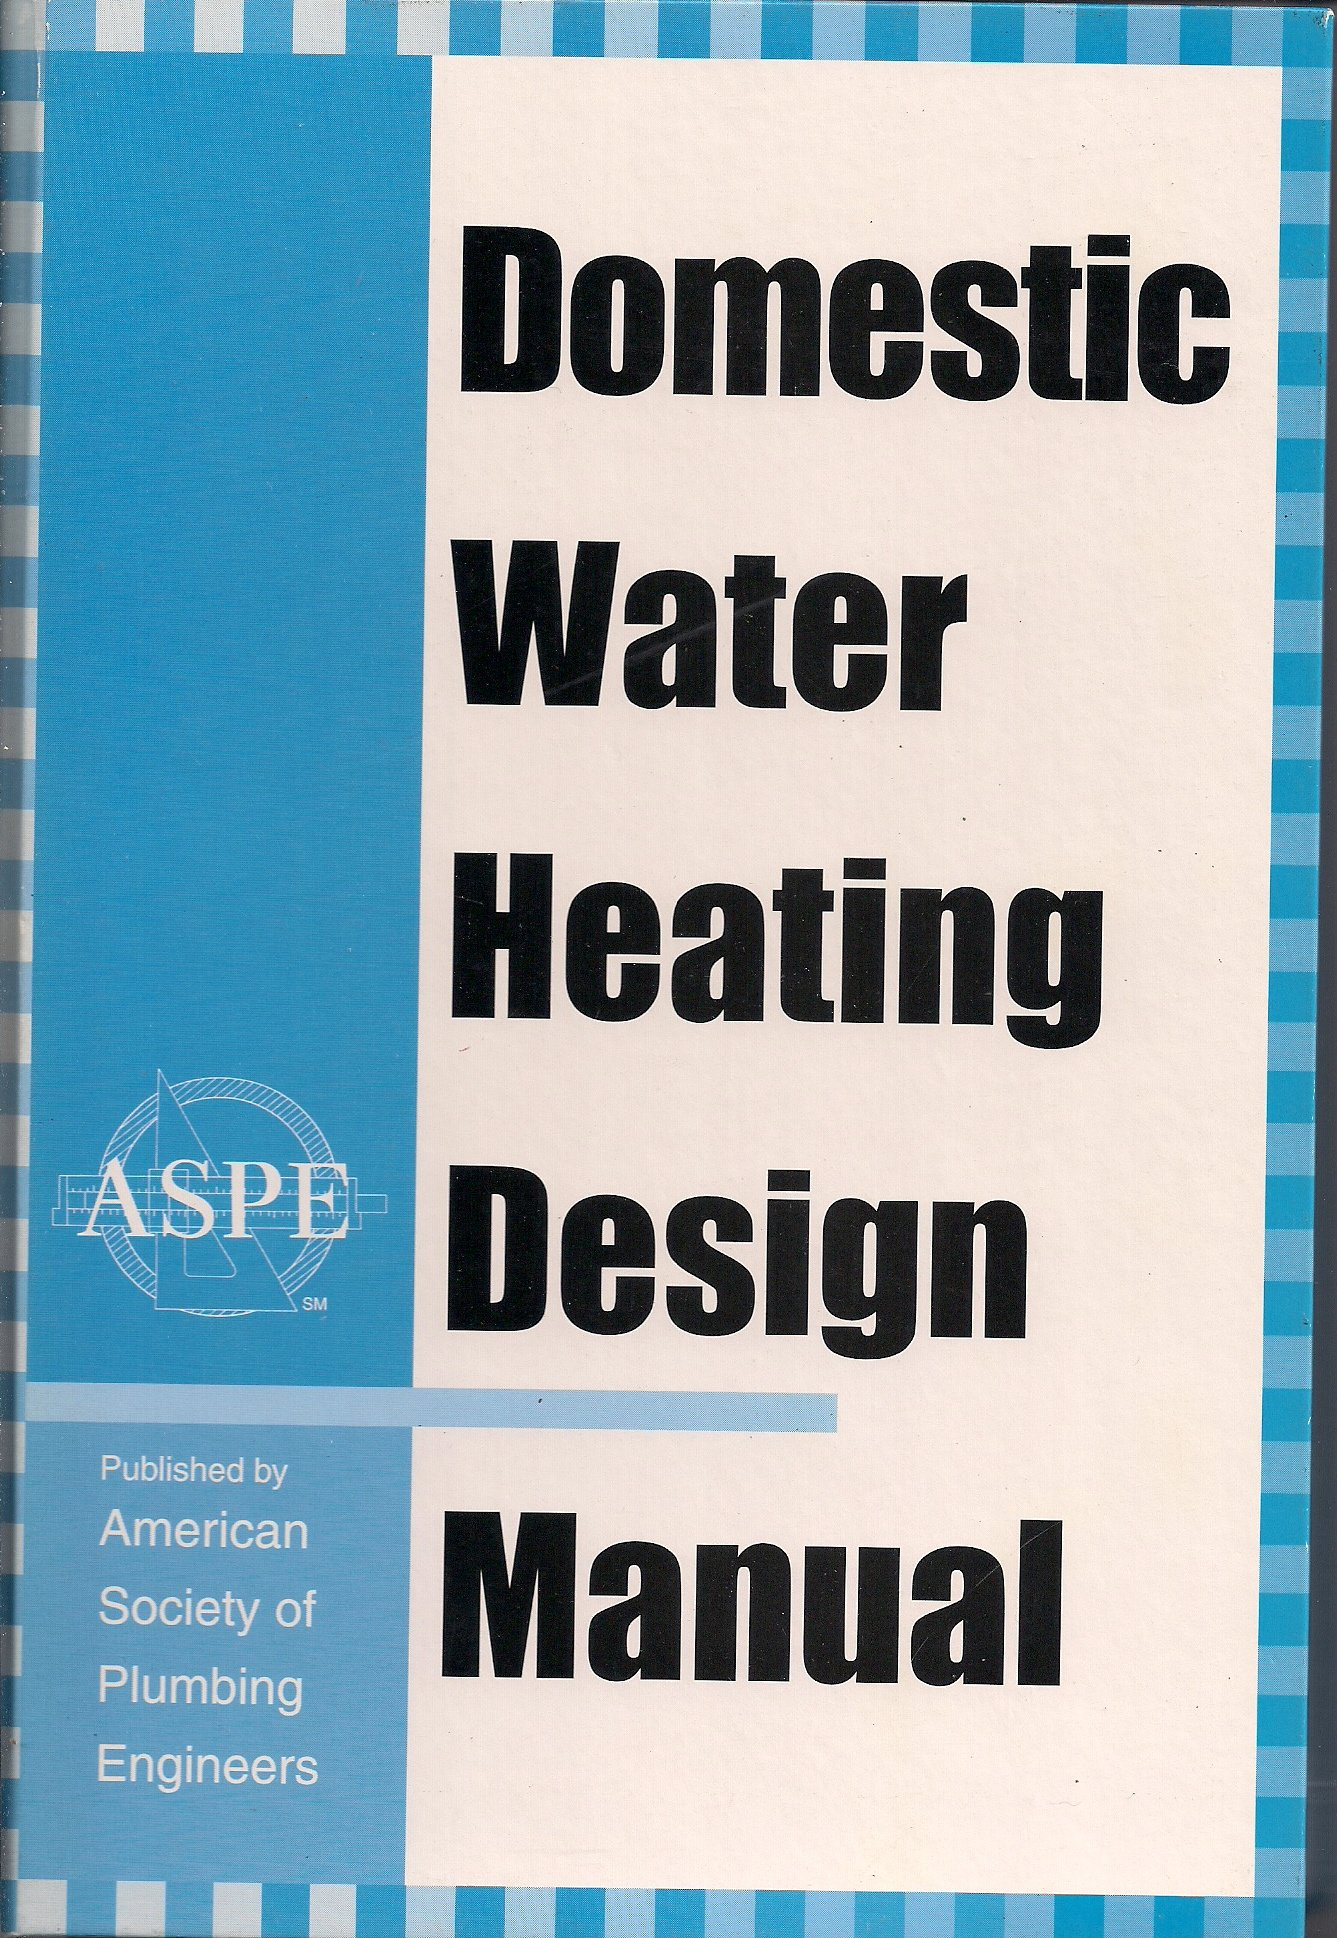 Domestic Water Heating Design Manual: American Society of Plumbing on hot water heater installation guide, water tank wiring diagram, hot water heater voltage, hot water heater connector, water heater system diagram, hot water heater trouble shooting, hot water heater pressure relief valve, hot water tank hook up, water pump wiring diagram, hot water heater thermostat testing, hot water heater power, hot water heater not heating, water heater schematic diagram, hot water heater relay, hot water boiler heating system diagram, hot water heaters electric, heat pump water heater diagram, hot water heater generator, water heater installation diagram,